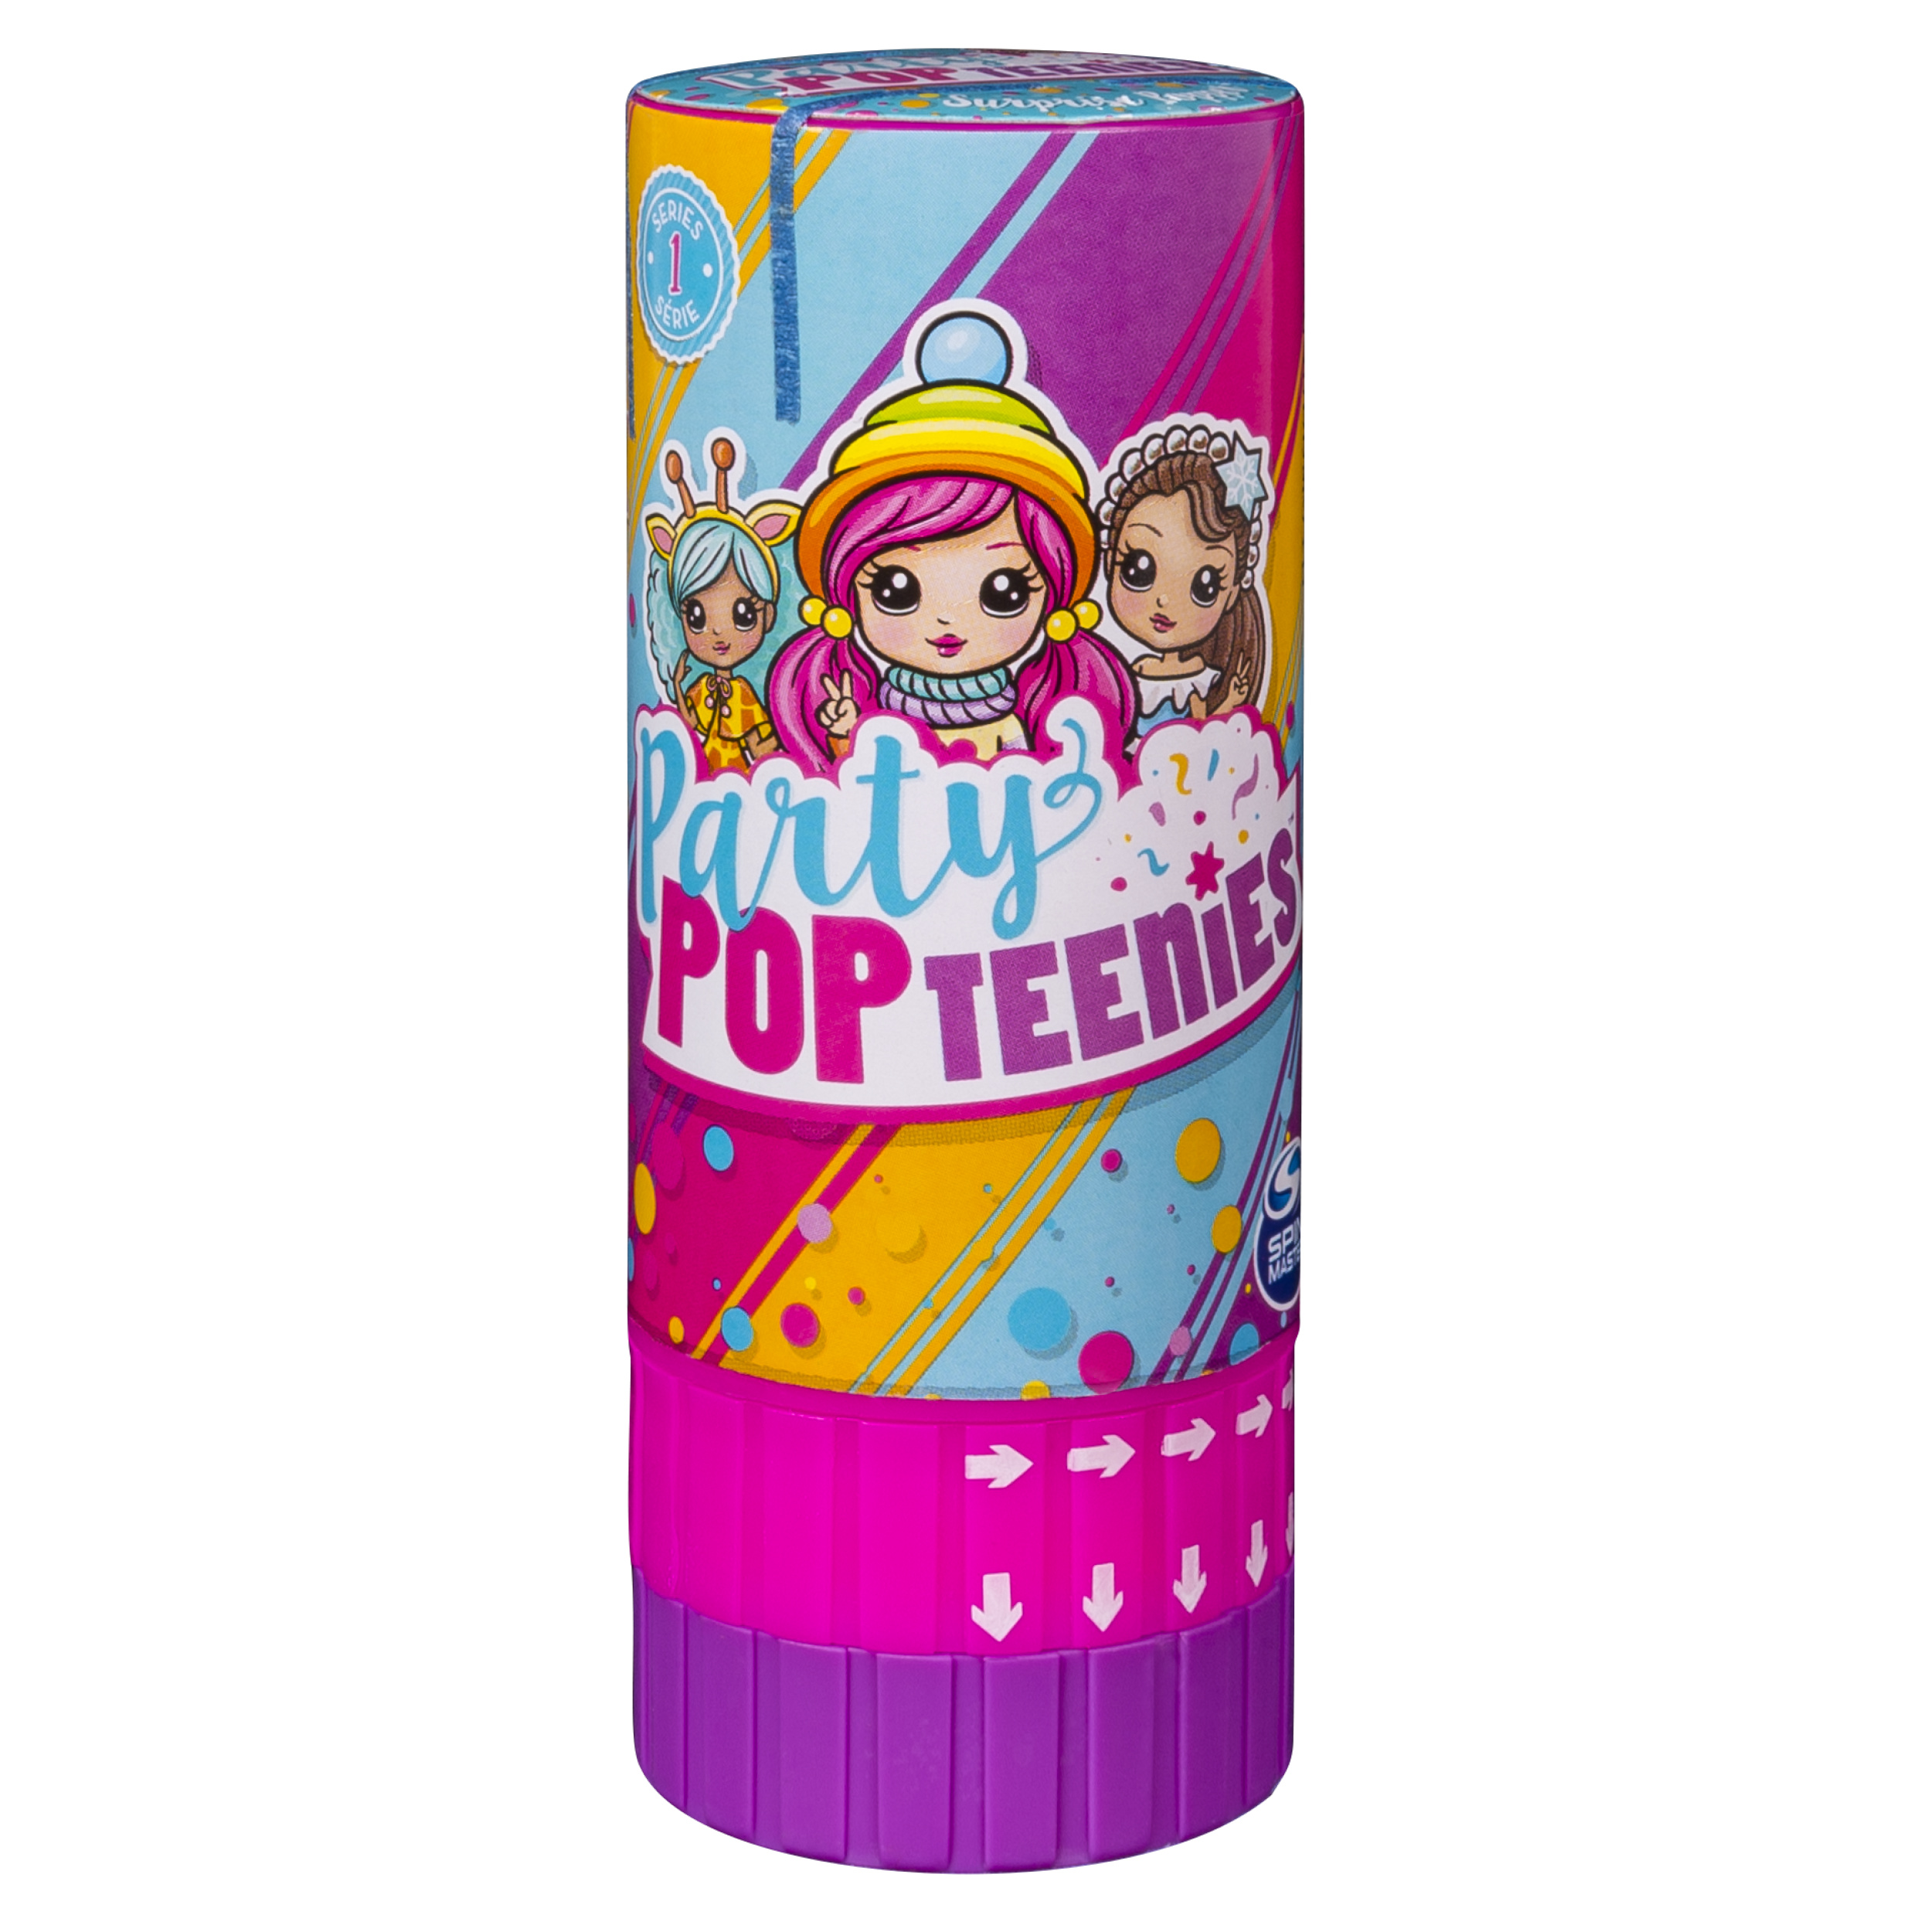 Party Popteenies - Surprise Popper with Confetti, Collectible Mini Doll and Accessories for Ages 4 and Up (Styles May Vary)